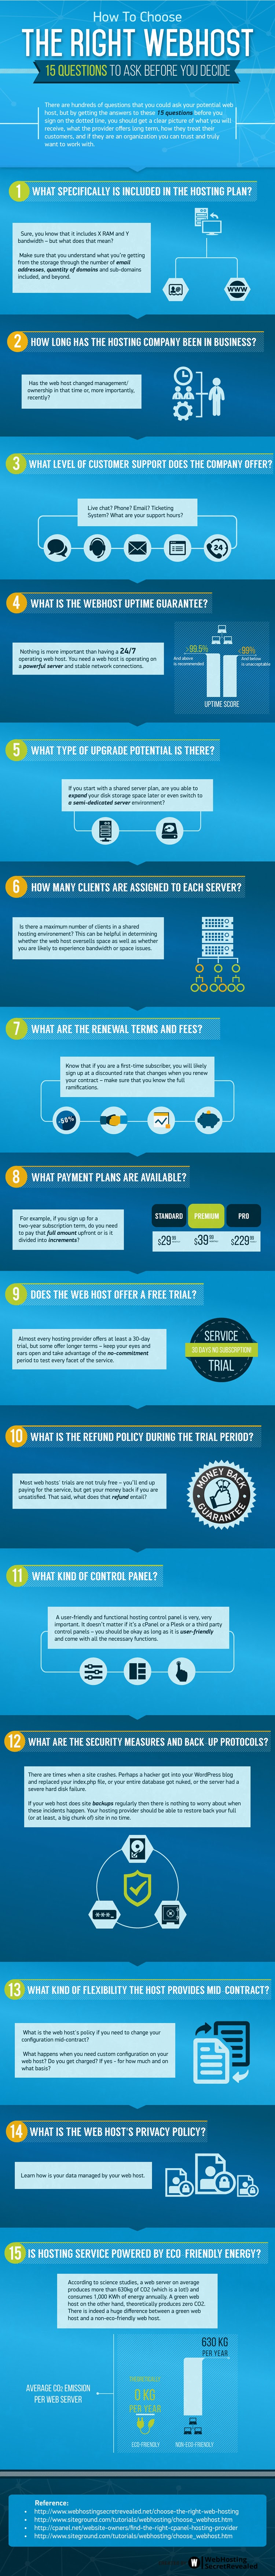 How to Pick Up the Best Web Host #infographic